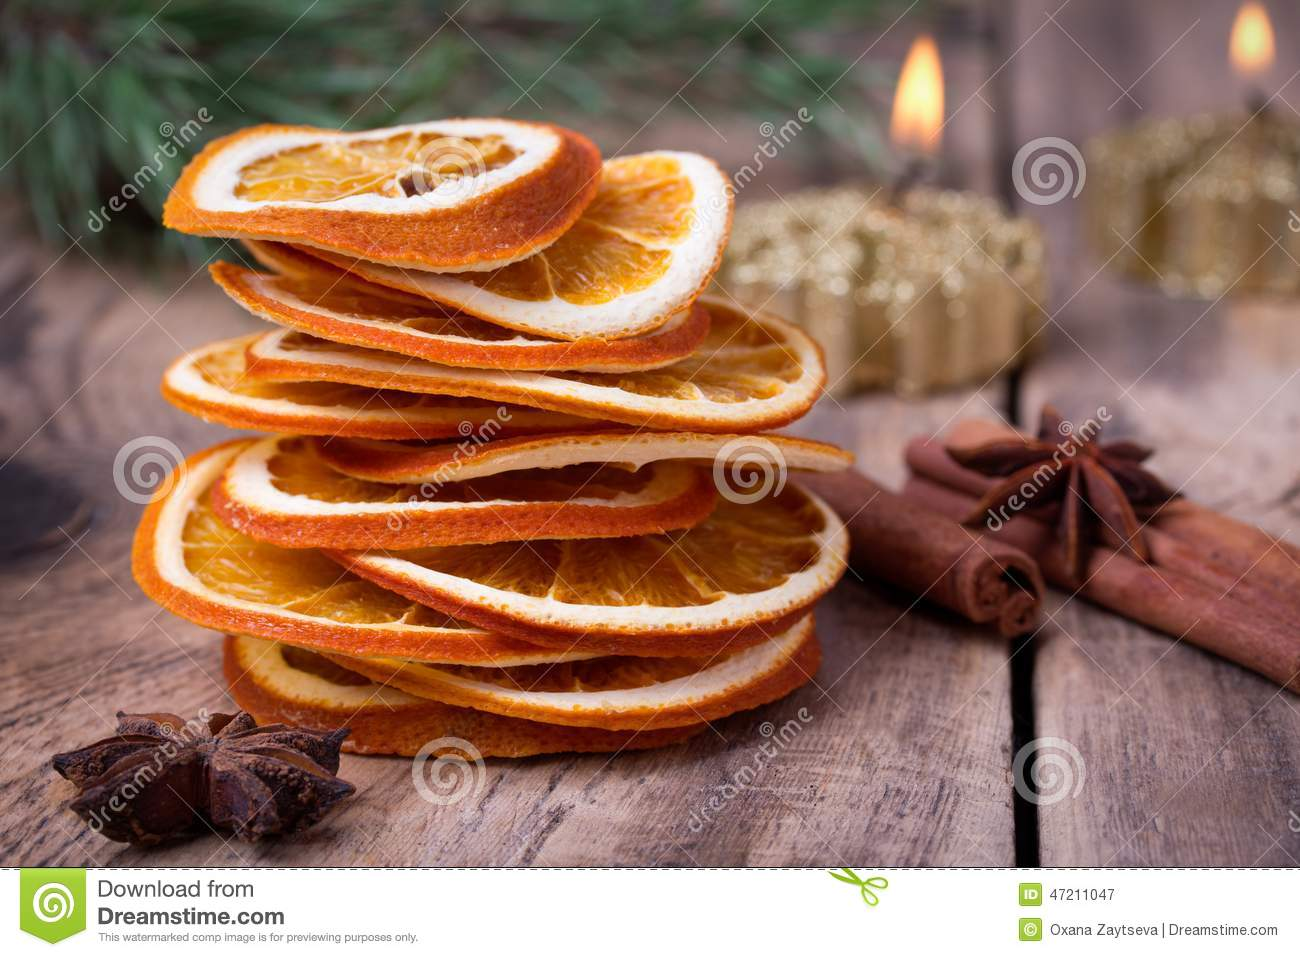 Sliced of dried orange cinnamon sticks anise stars and for Baking oranges for christmas decoration